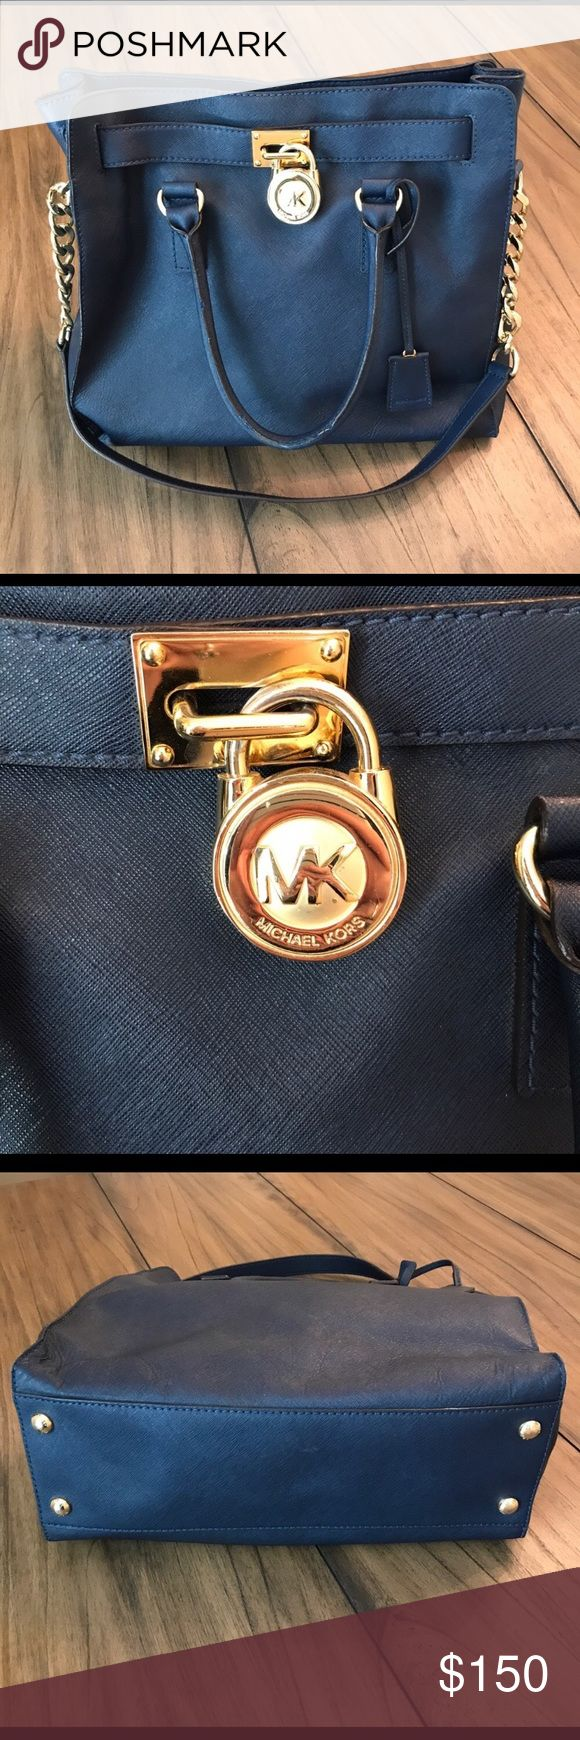 Michael Kors Leather Studio Hamilton Satchel Beautiful Navy Blue Michael Kors Studio Hamilton Satchel. Has a wonderful amount of room for a large amount of items. It's in mostly great conditions and looks beautiful. The last two pictures show the wear on the rims and handles. Michael Kors Bags